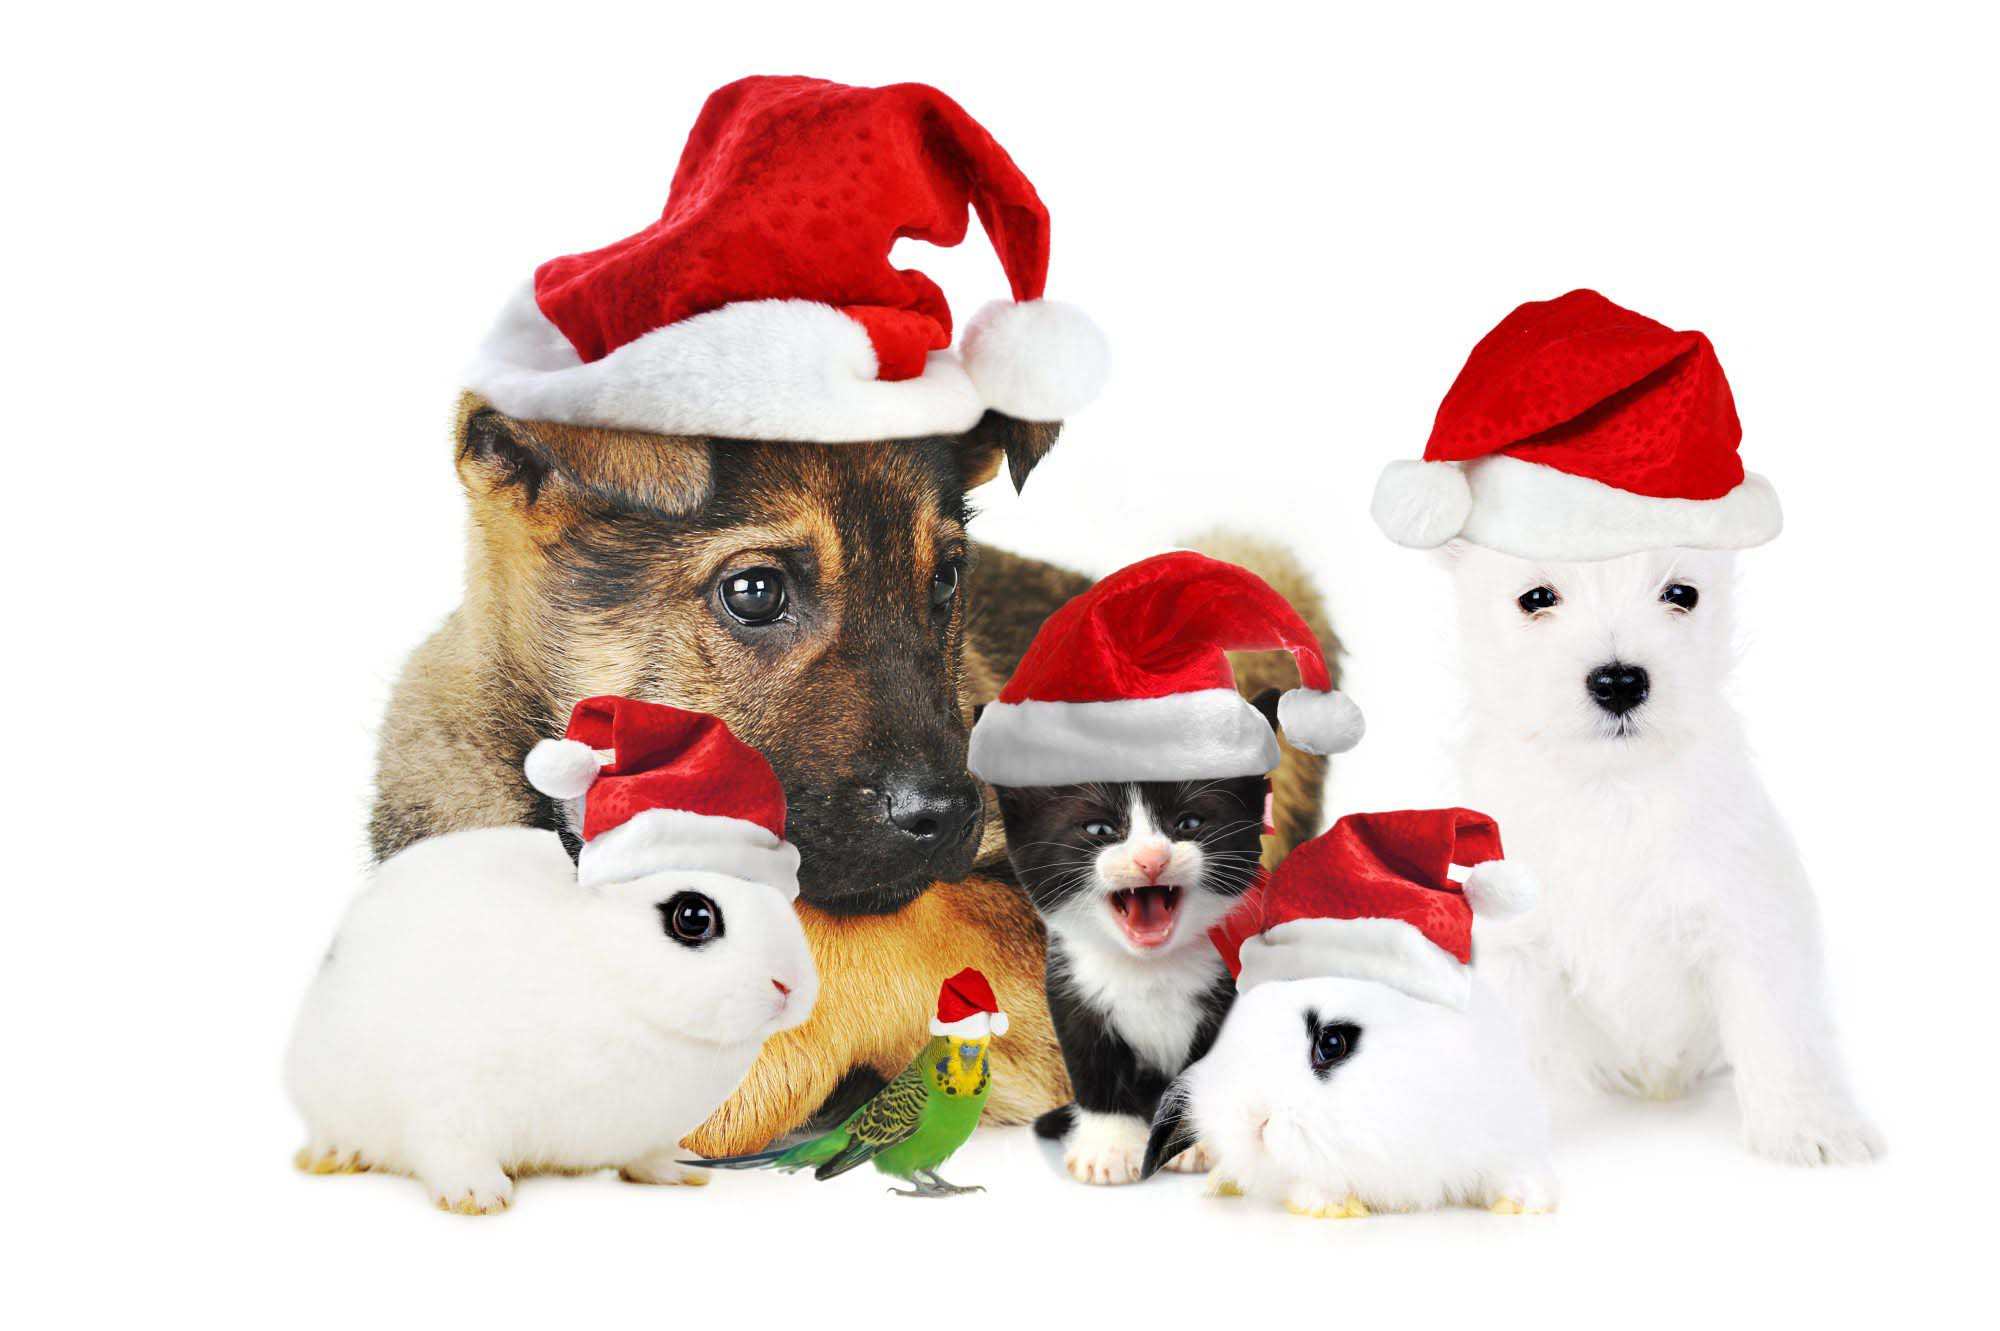 Cute Christmas Dog Wallpapers And Pictures